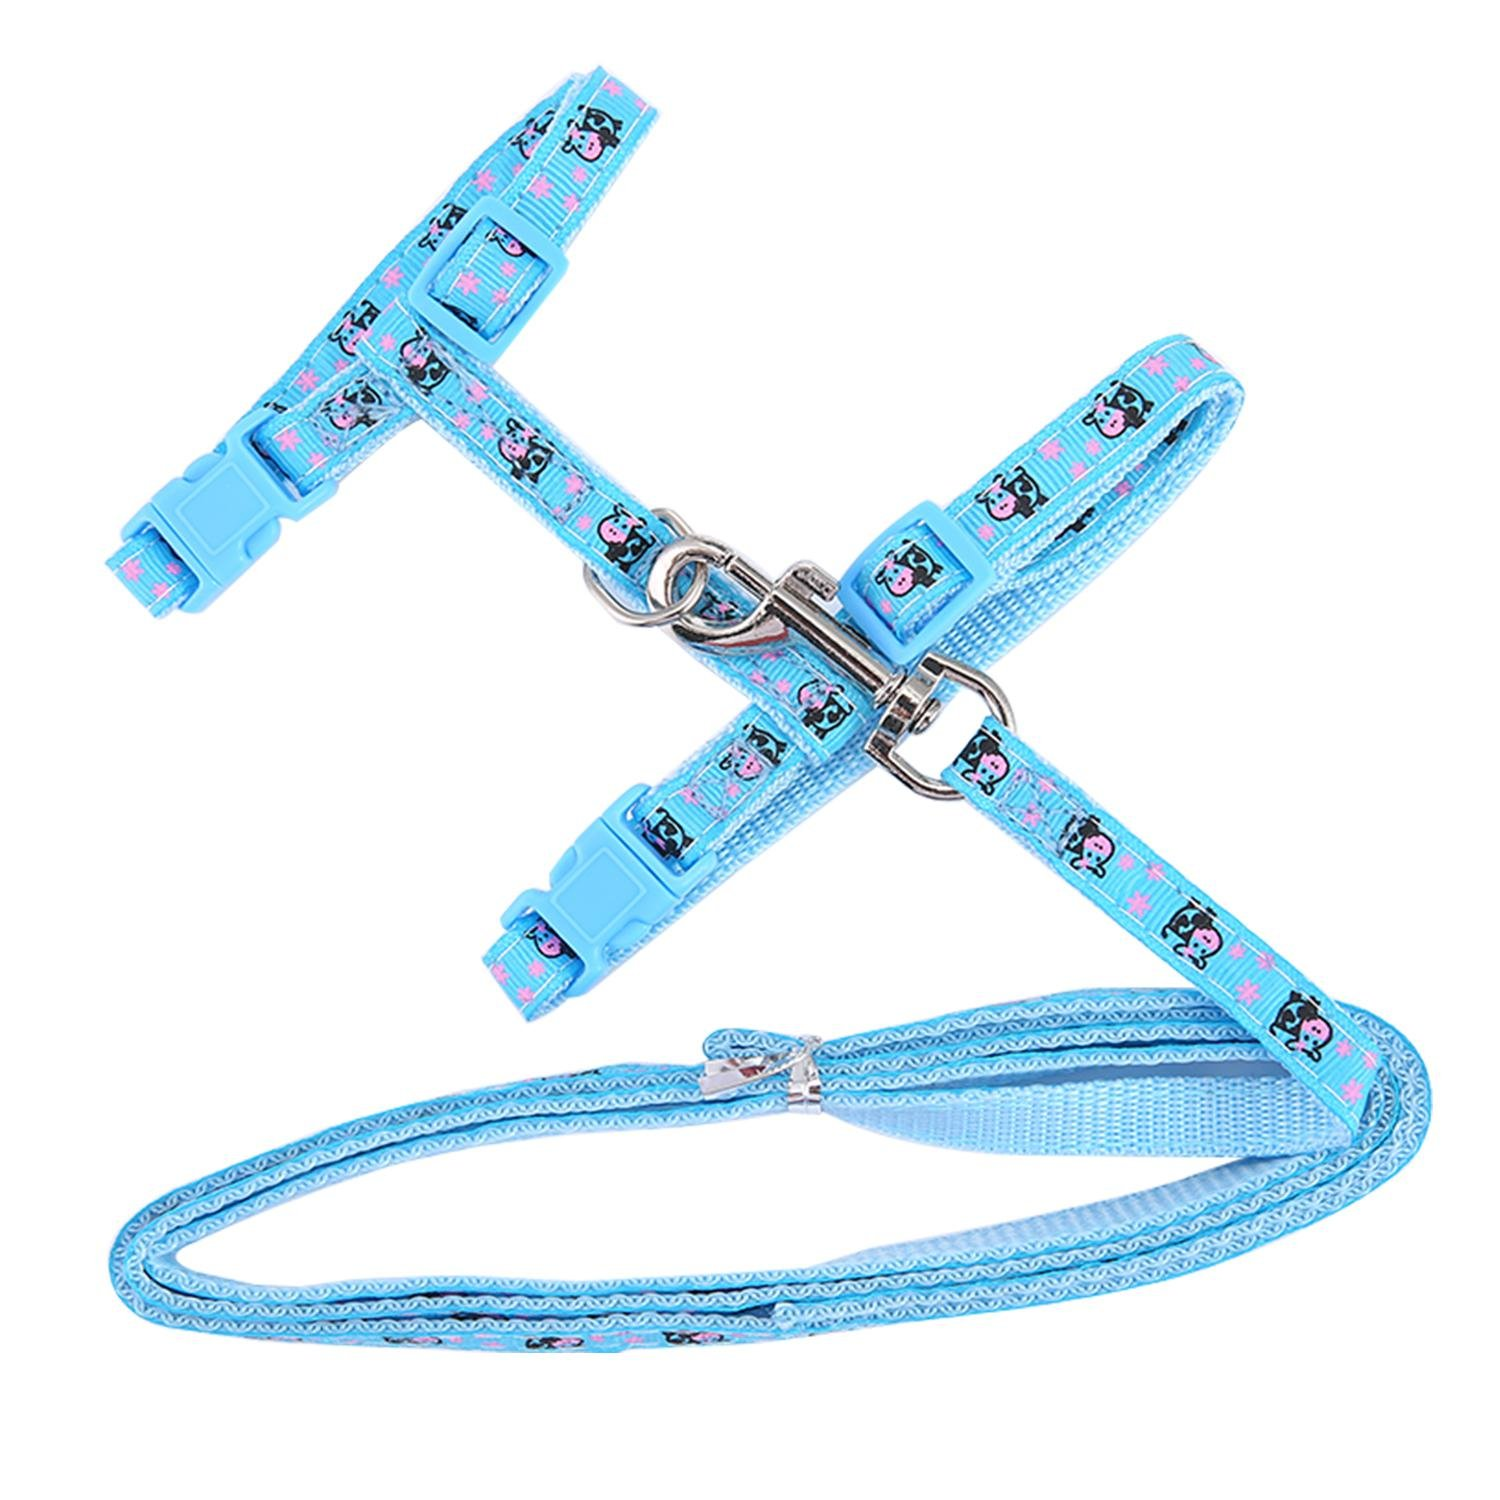 Cat and Other Small Pet Animals Bunny Soft Nylon Strap Belt Safety Rope Leads for Ferret Blue Aolvo Adjustable Kitten//Ferret//Rabbit//Cat Walking Harness and Leash for Walking Escape Proof